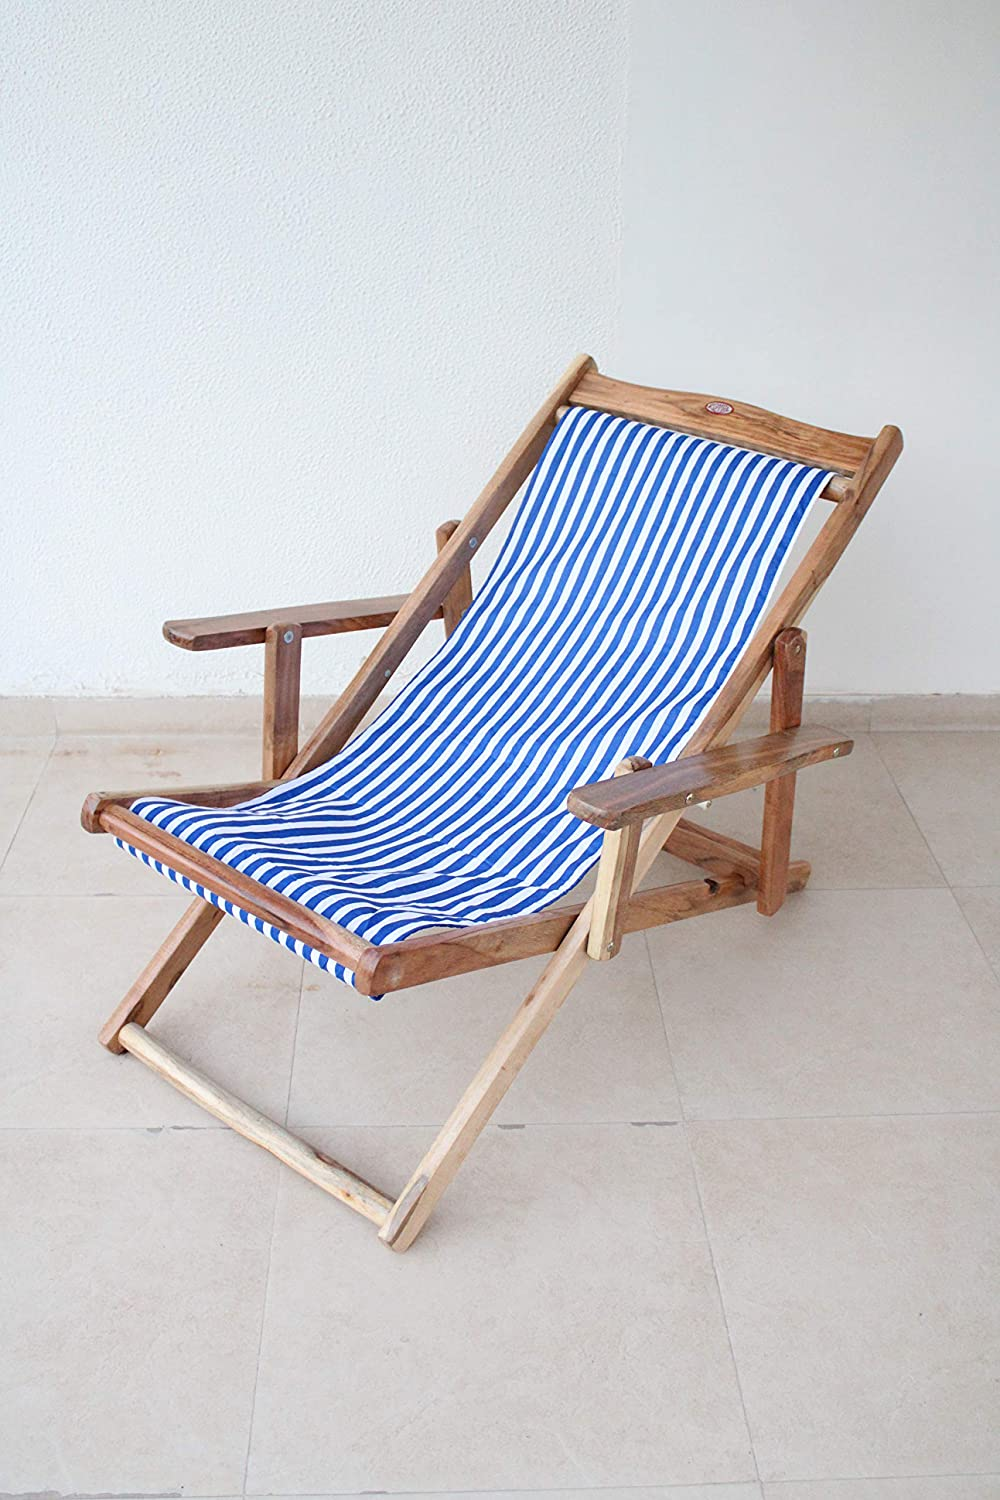 Magnificent Royal Bharat Sleep N Dream Chair 3 Step Adjustible Wooden Folding Portable Chair Relaxing Chair Garden Chair Outdoor Chair Camping Chair With Evergreenethics Interior Chair Design Evergreenethicsorg